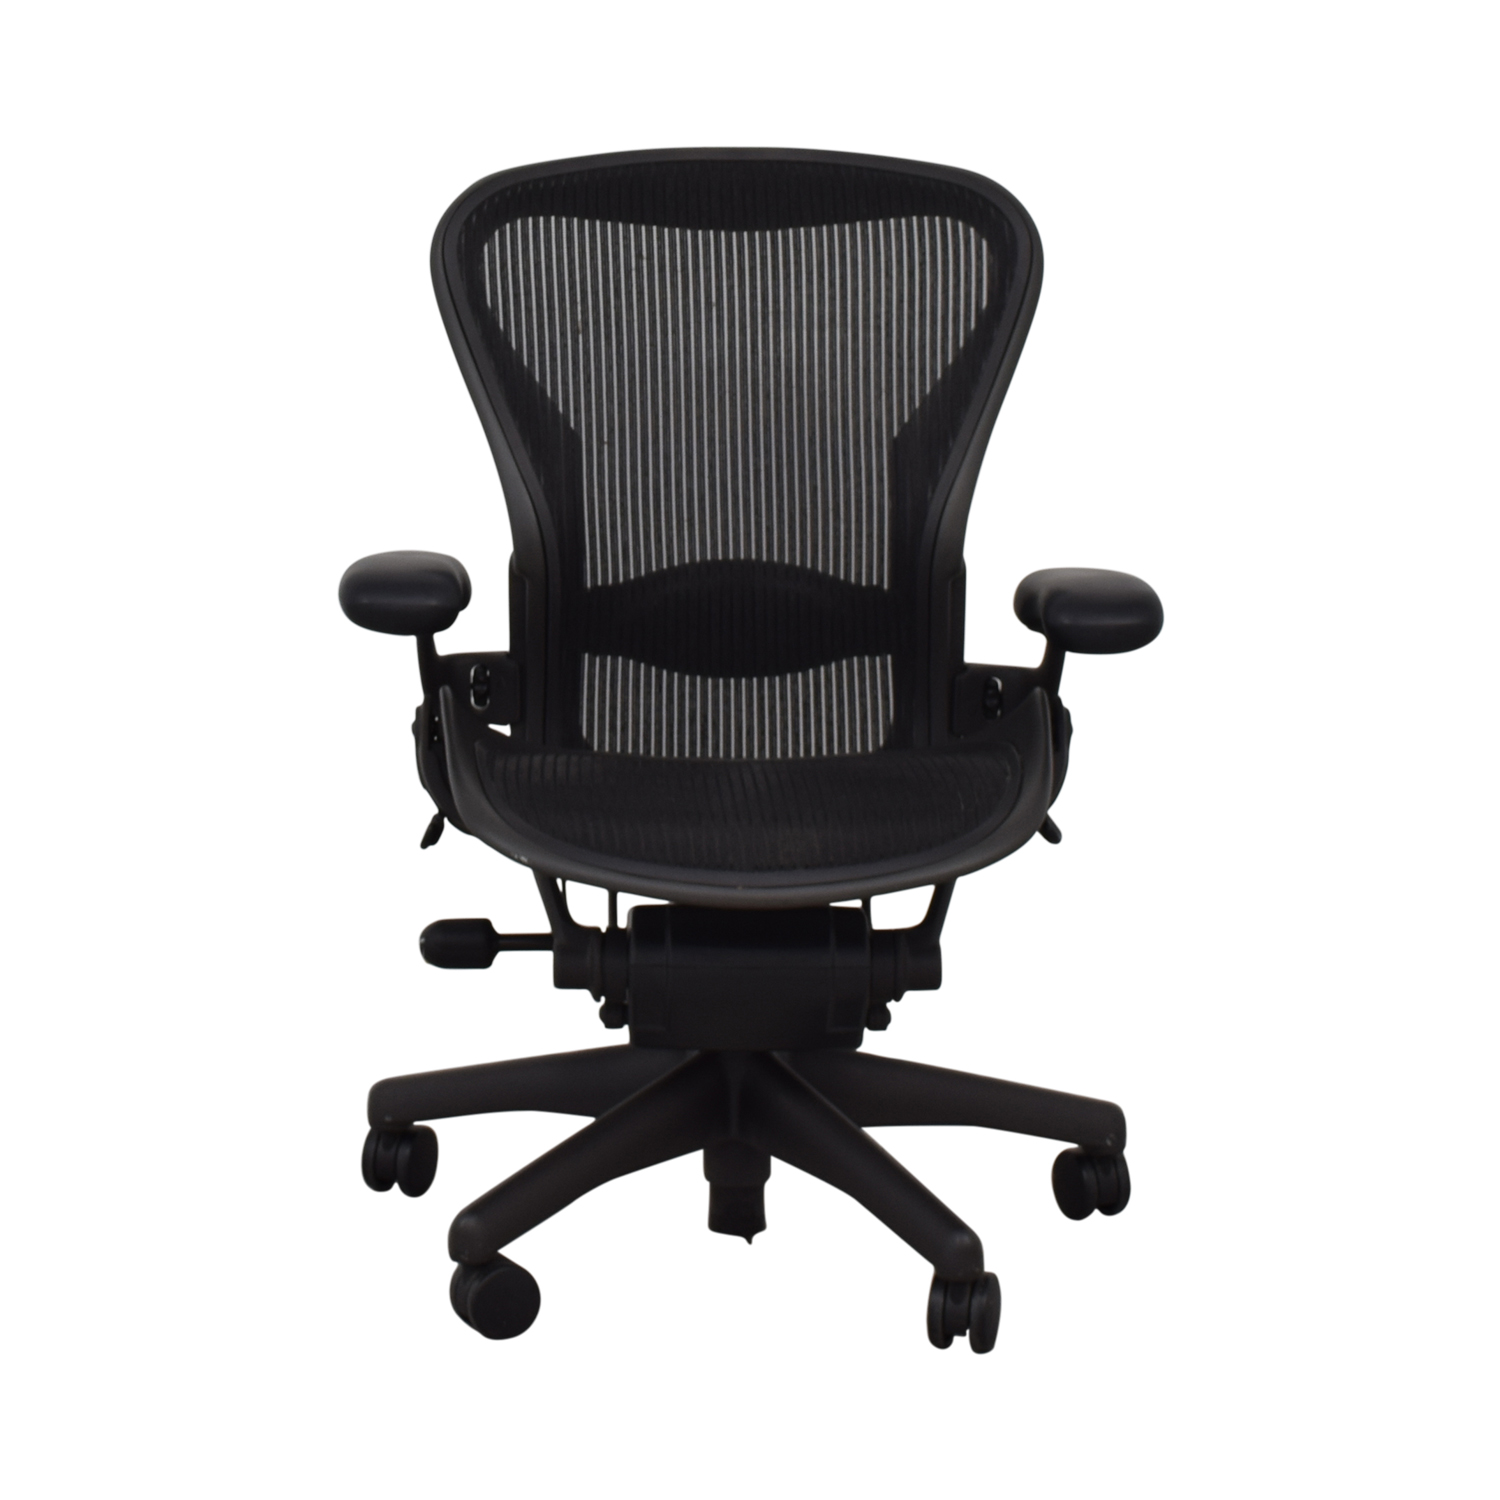 Herman Miller Herman Miller Aeron Size B Black Office Desk Chair price